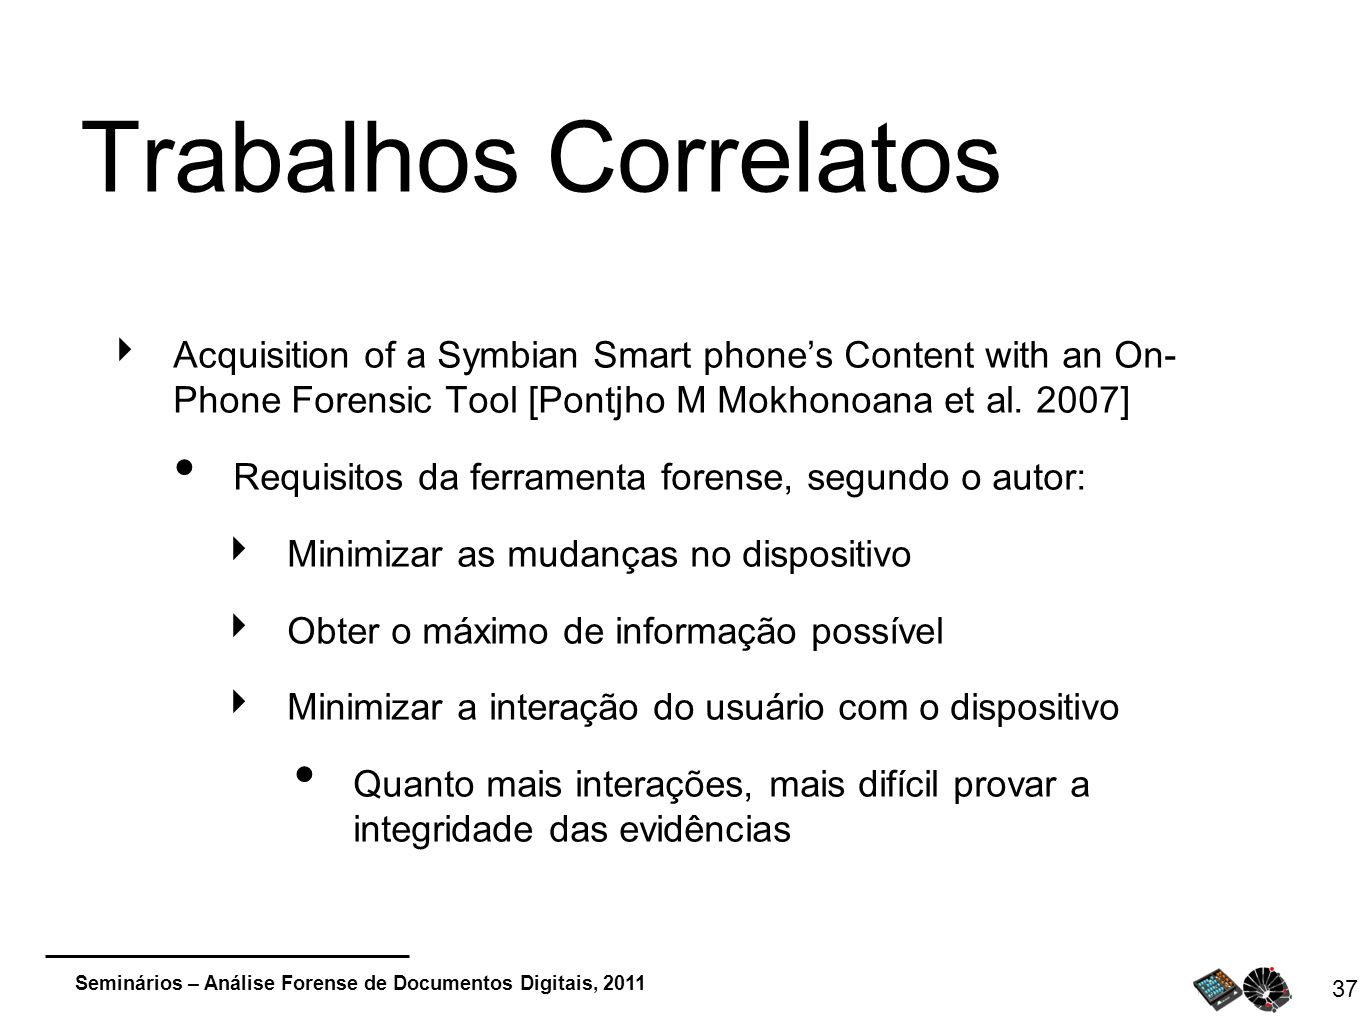 Trabalhos CorrelatosAcquisition of a Symbian Smart phone's Content with an On- Phone Forensic Tool [Pontjho M Mokhonoana et al. 2007]